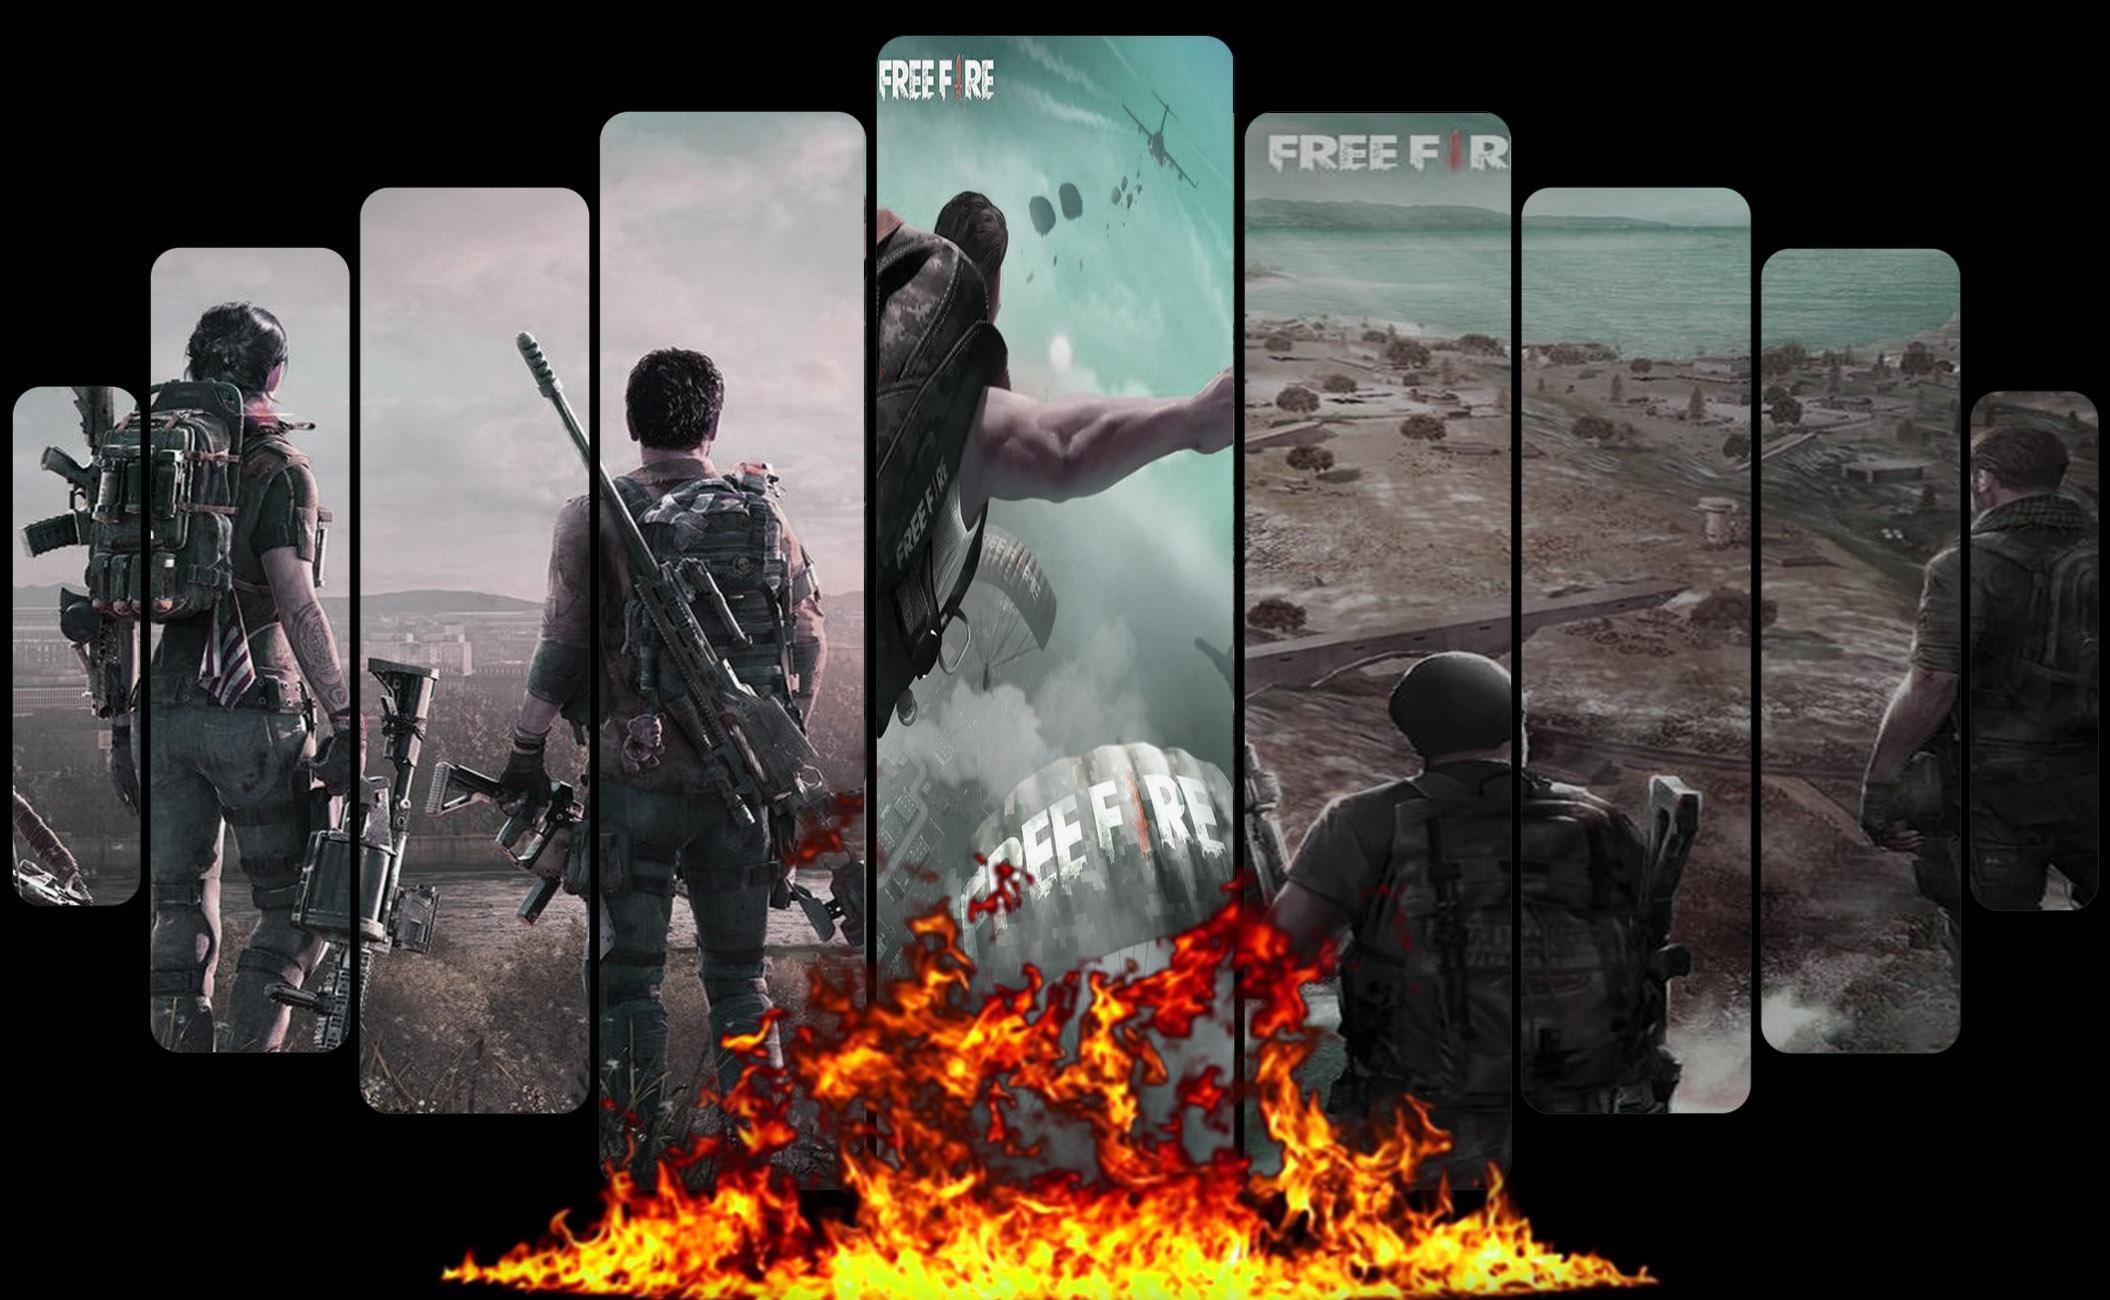 F Fire Wallpaper hd 4k 2019 for Android - APK Download